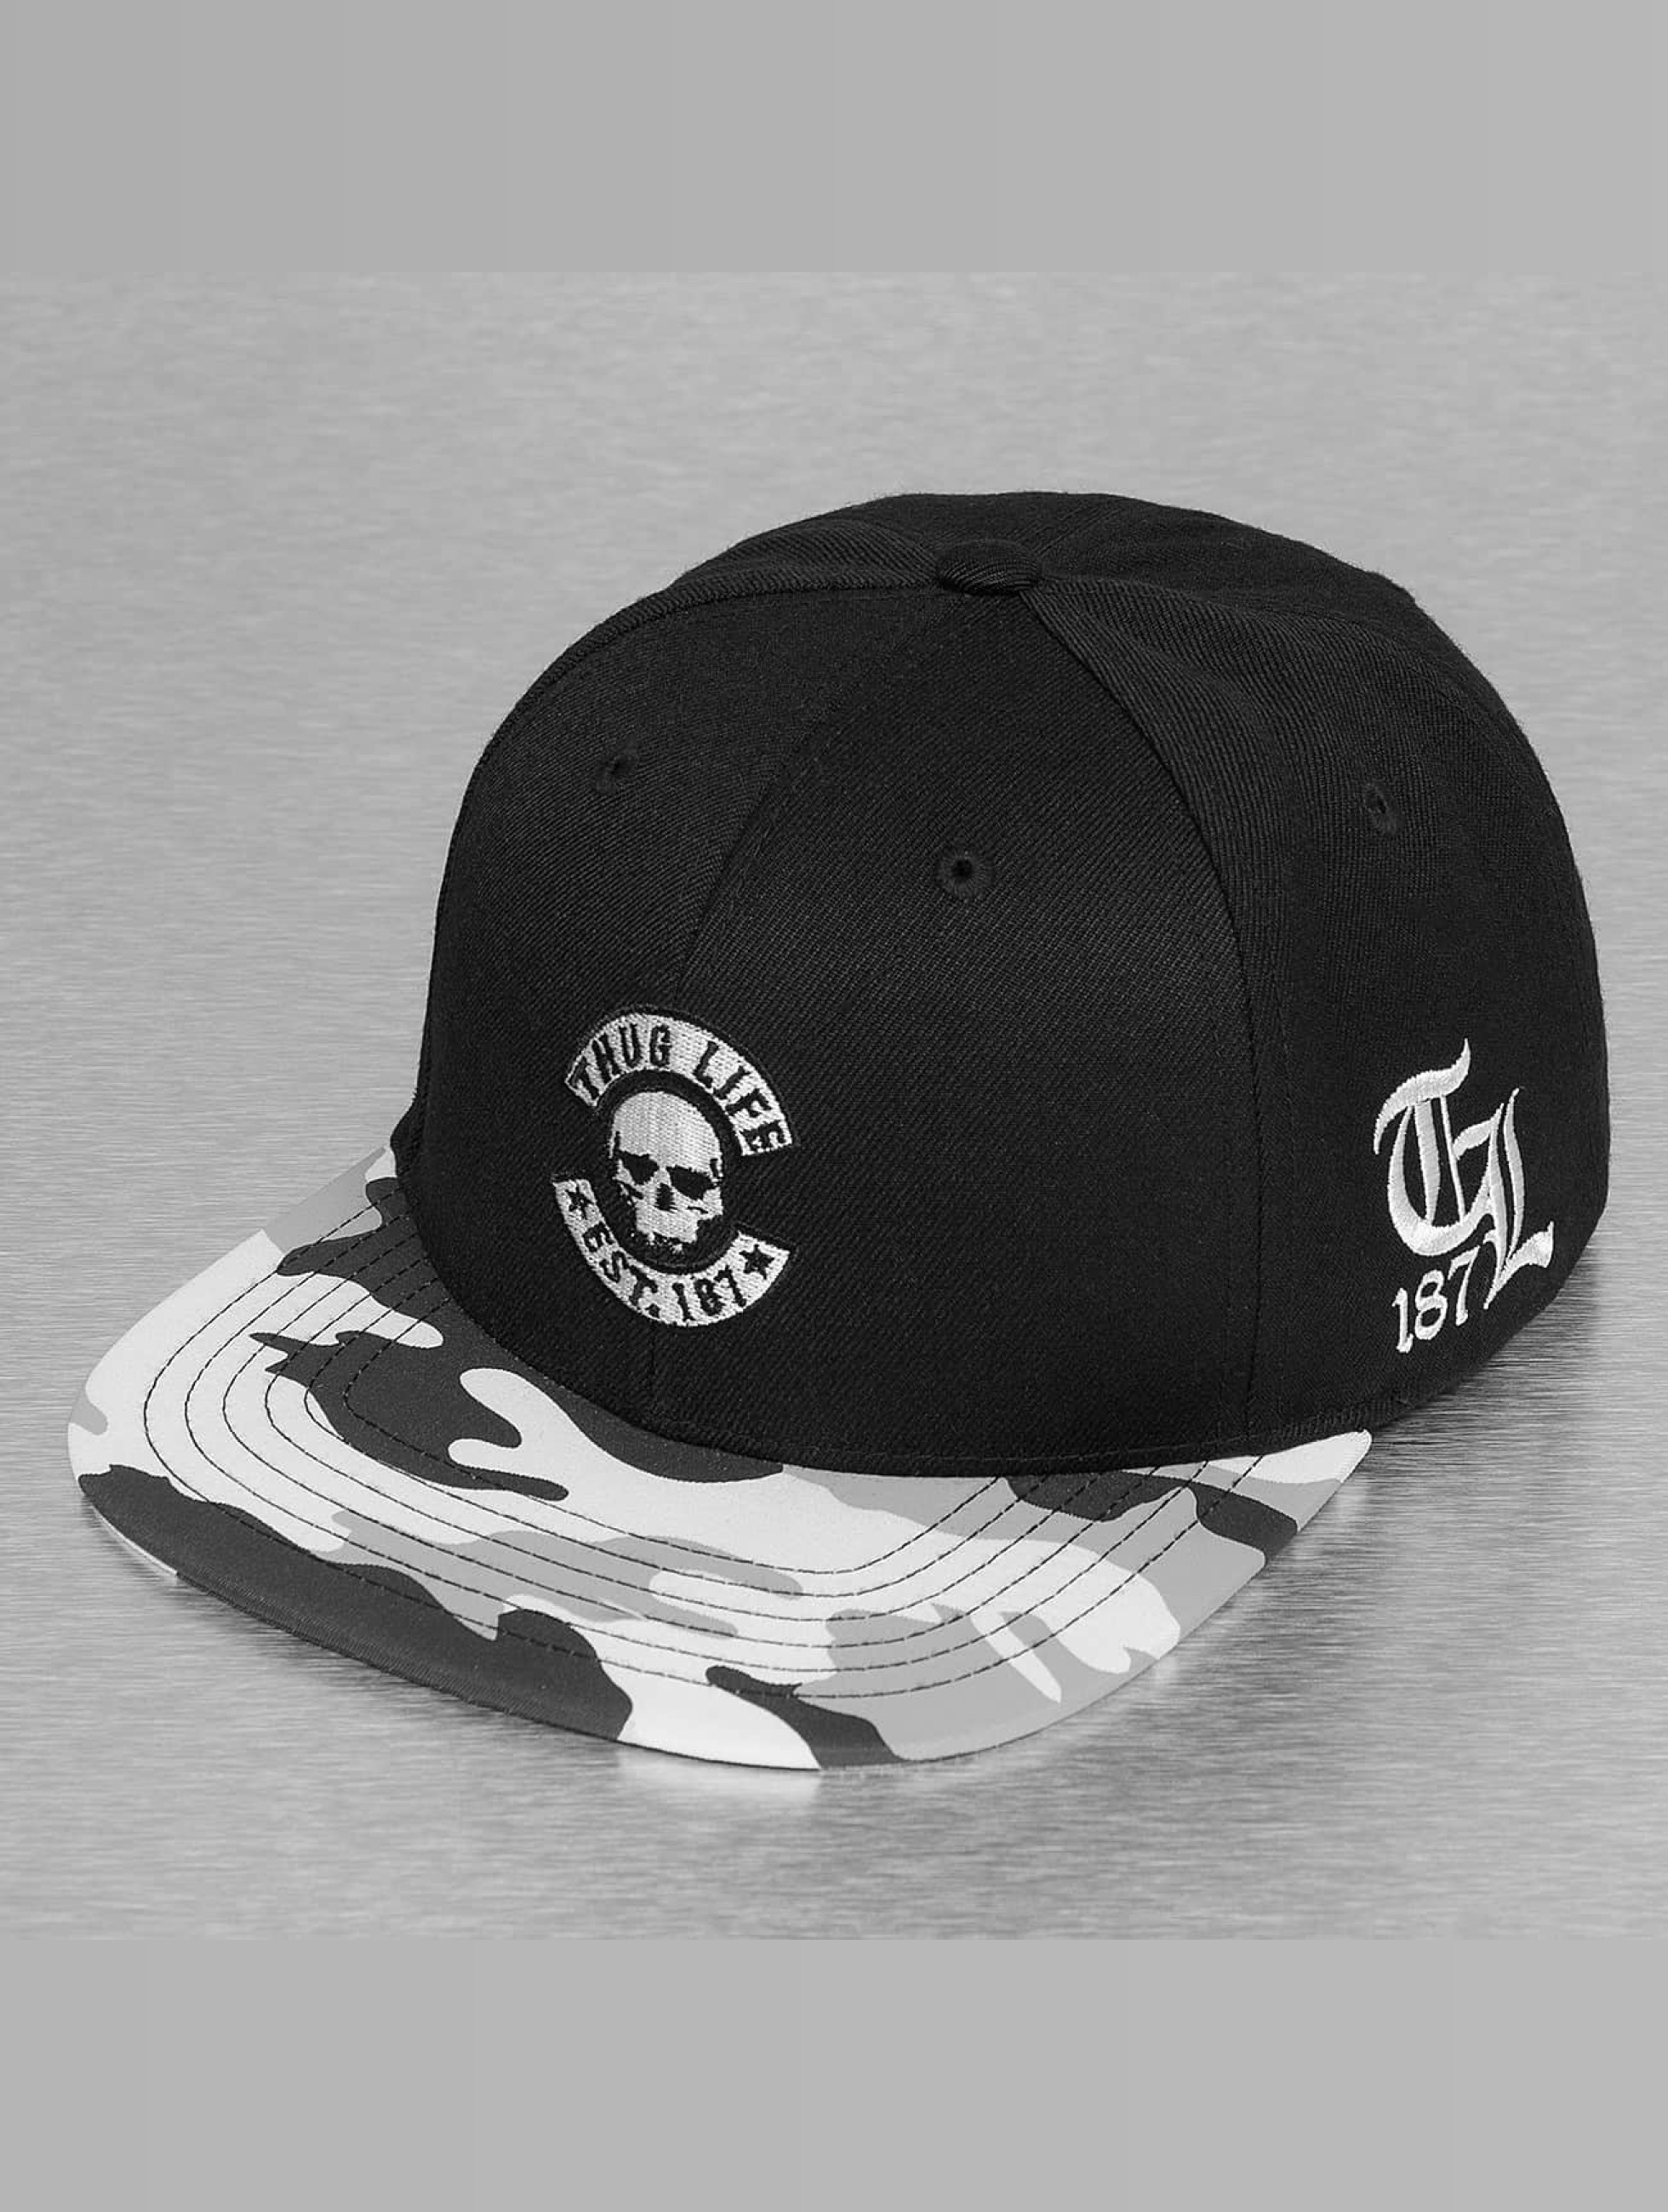 Thug Life / Snapback Cap Ragthug in black Adjustable